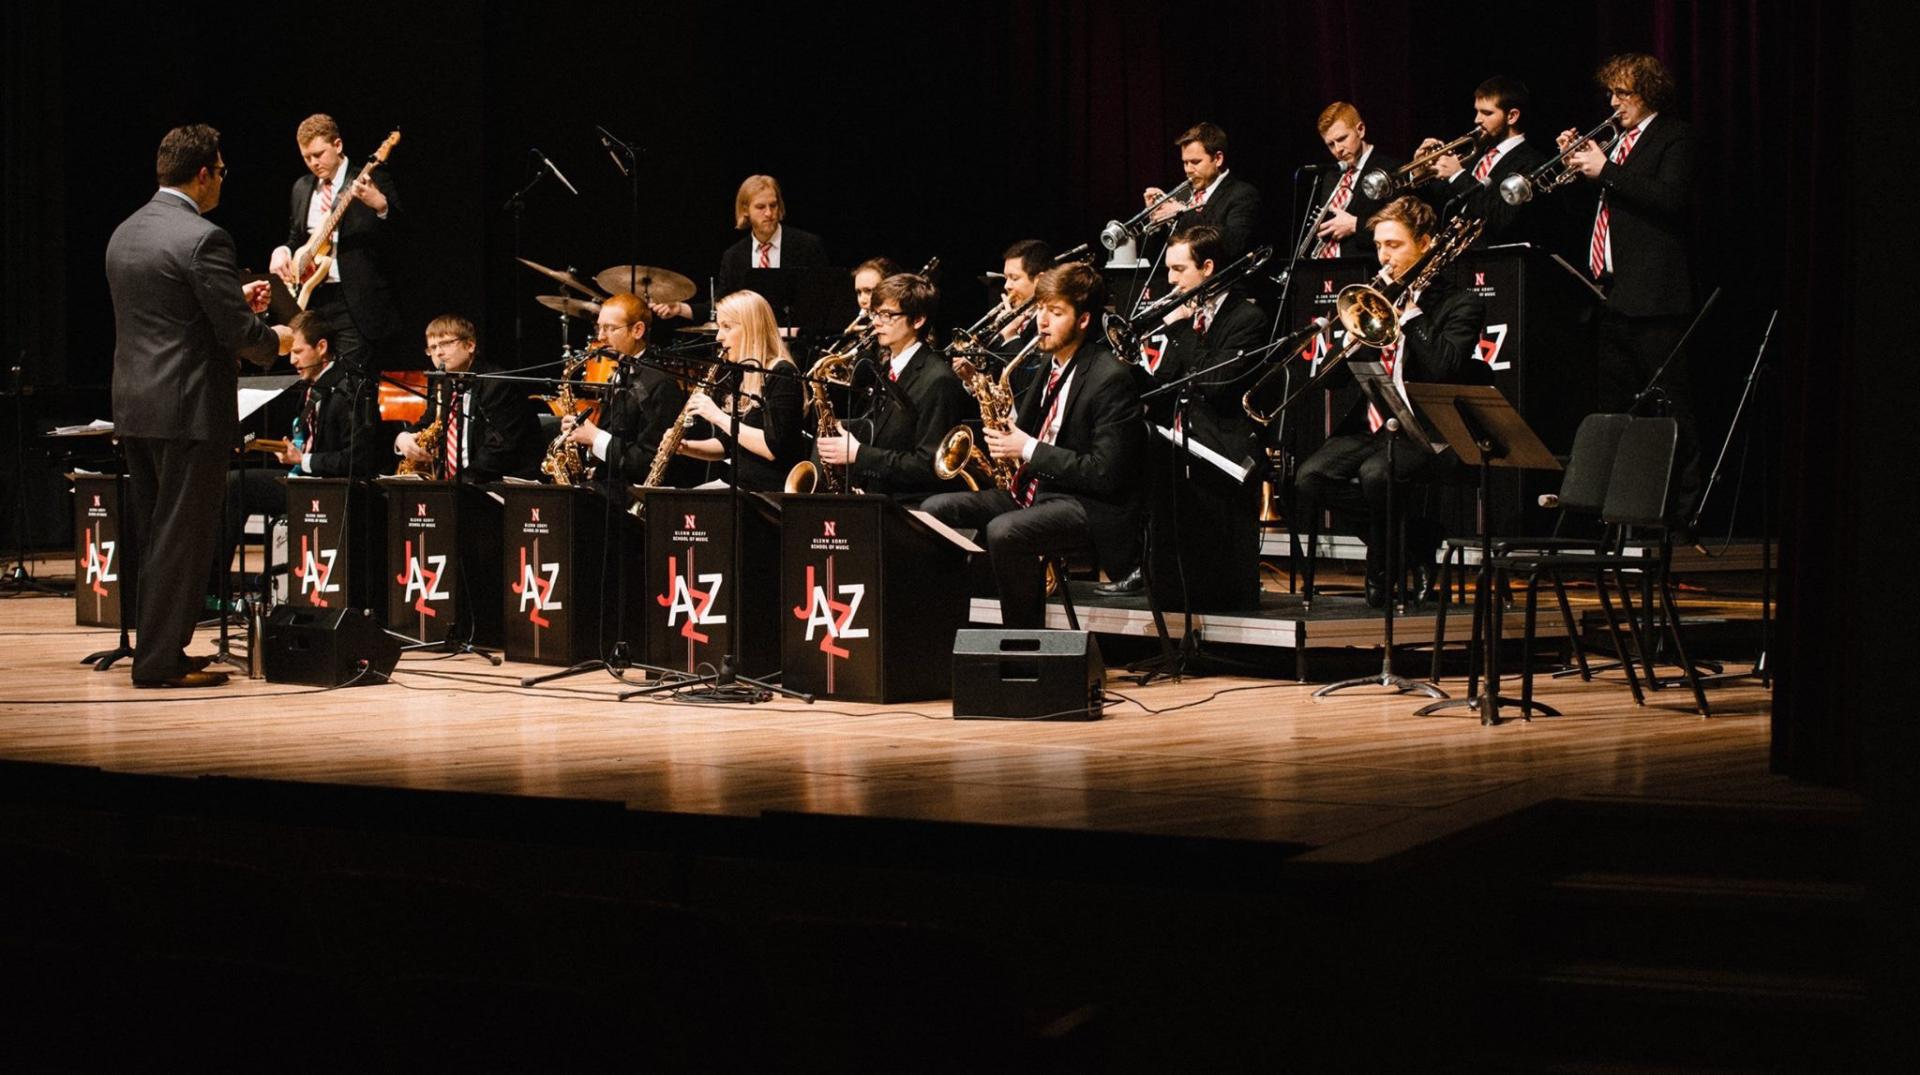 Jazz Orchestra Performing at Kimball Recital Hall